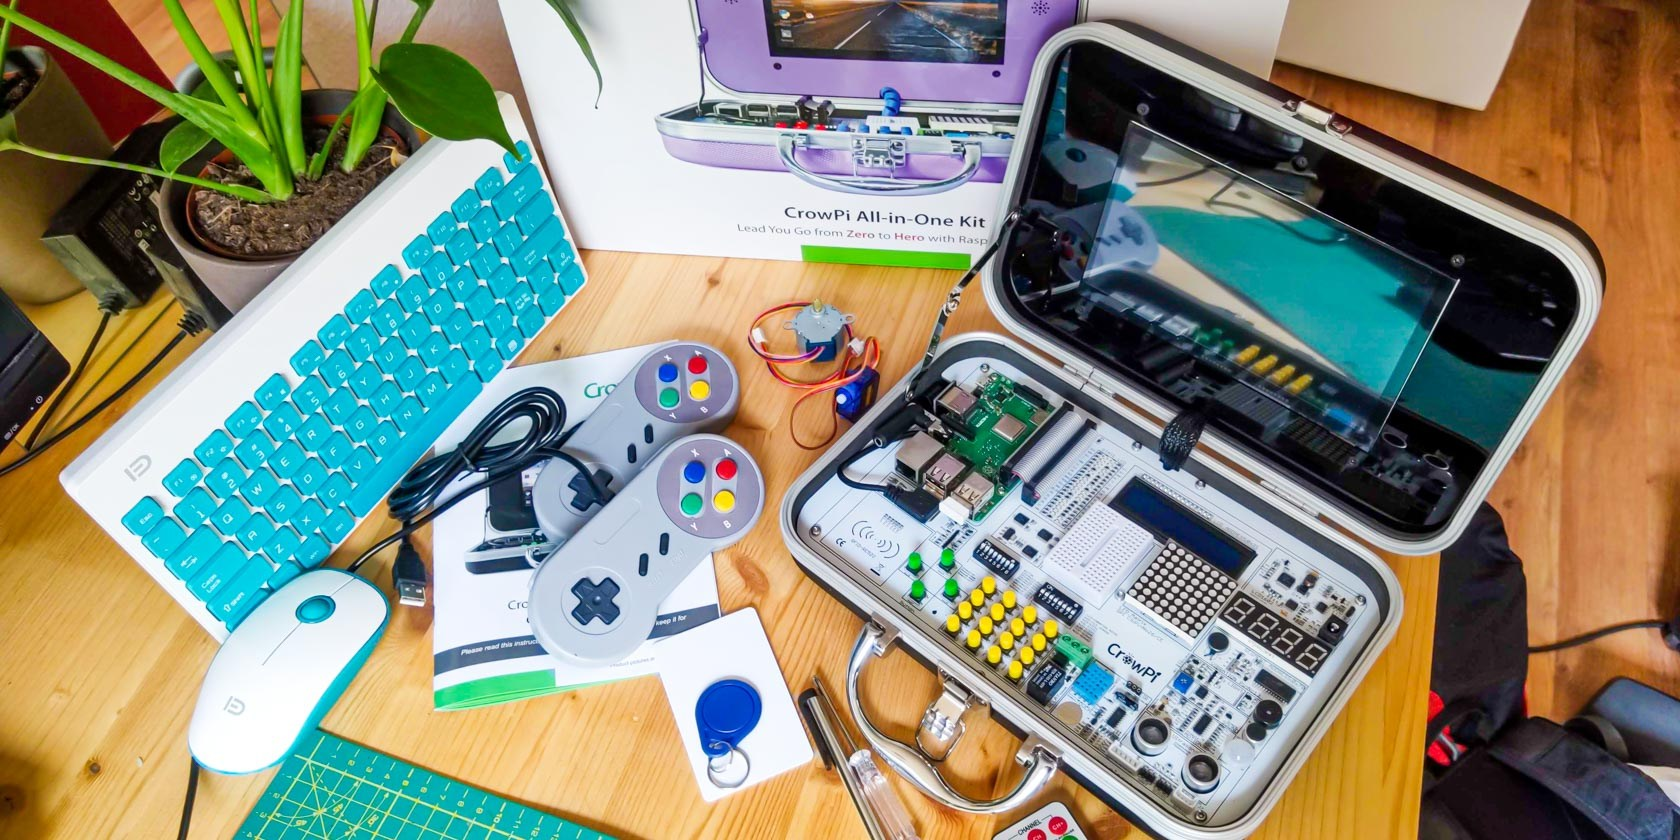 Don't Buy a Raspberry Pi Until You've Seen CrowPi All-in-One Kit (Review and Giveaway!)